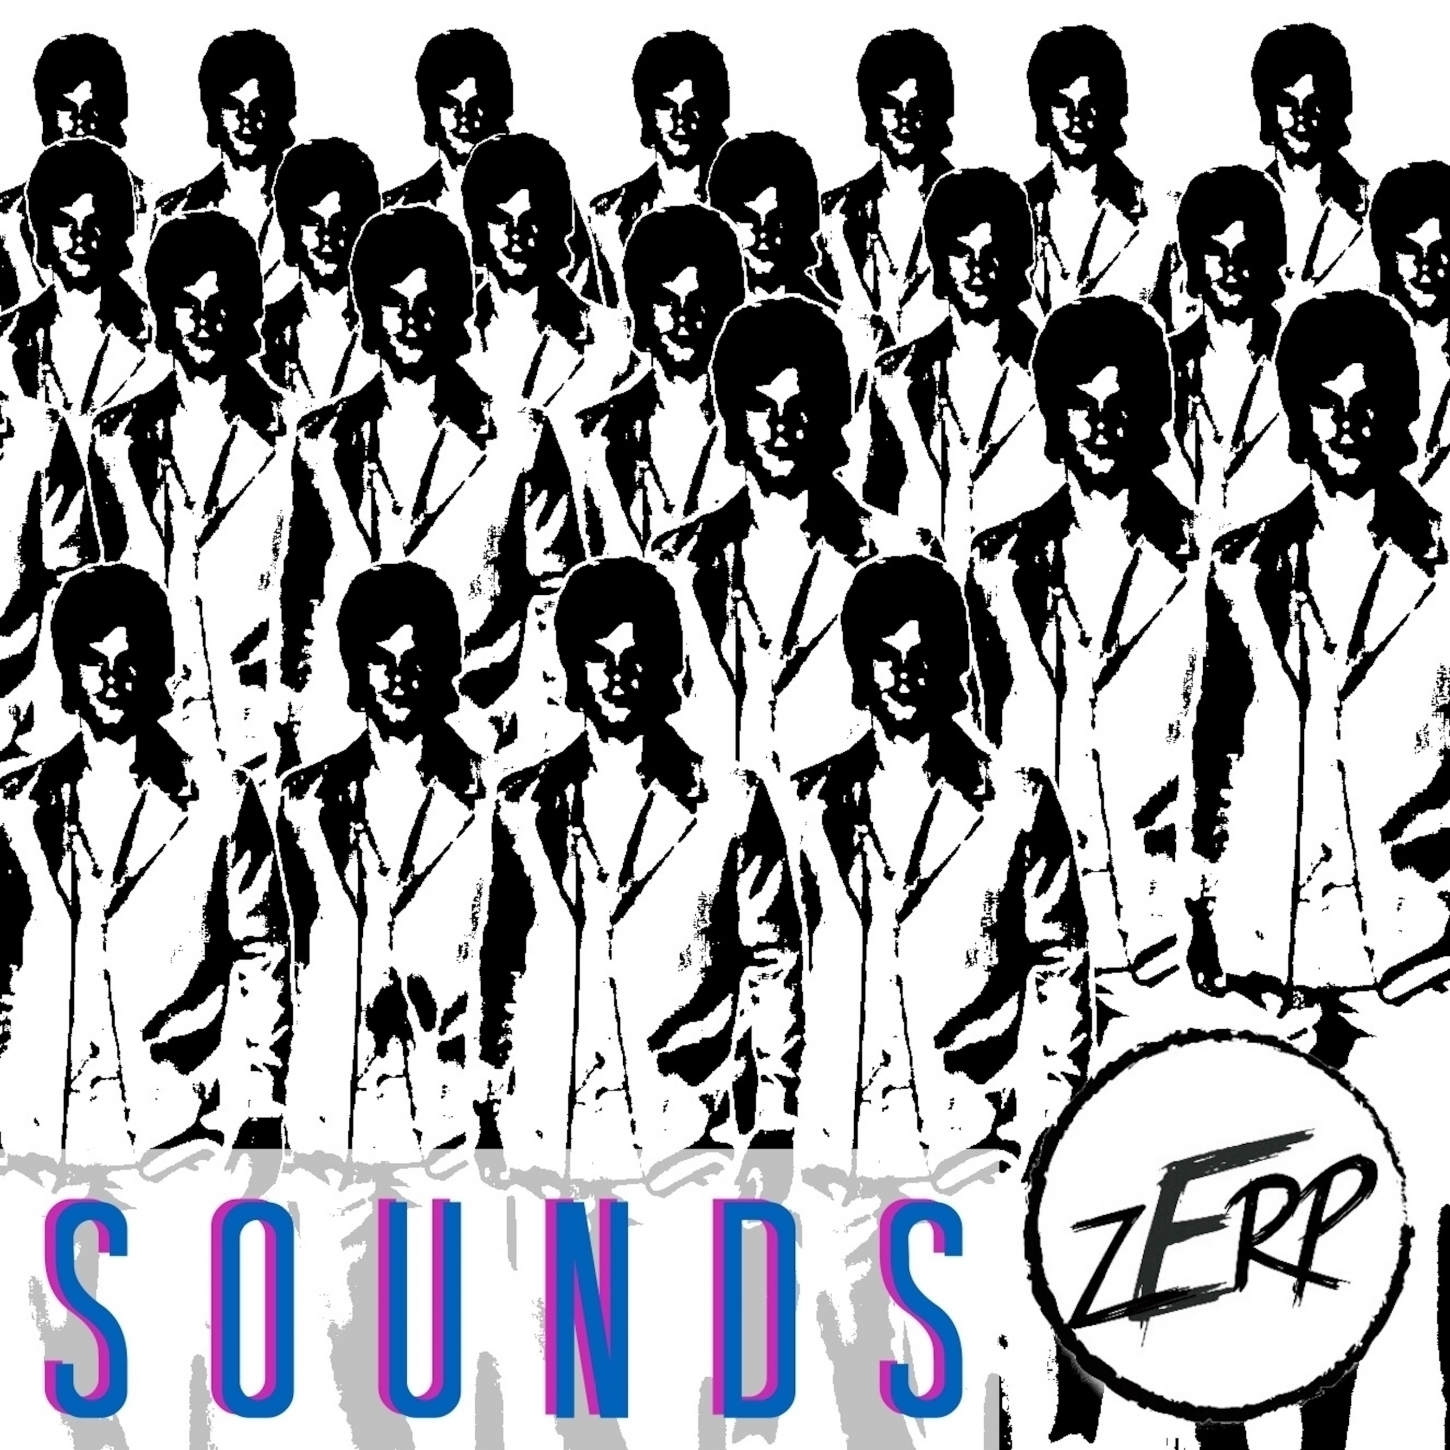 ZERP SOUNDS  - Cookies for your ears.Instrumental album for scratch DJ's to play with.Zerp's 2nd album released in Feb 2017. Click Album cover to open Zerp's Store.